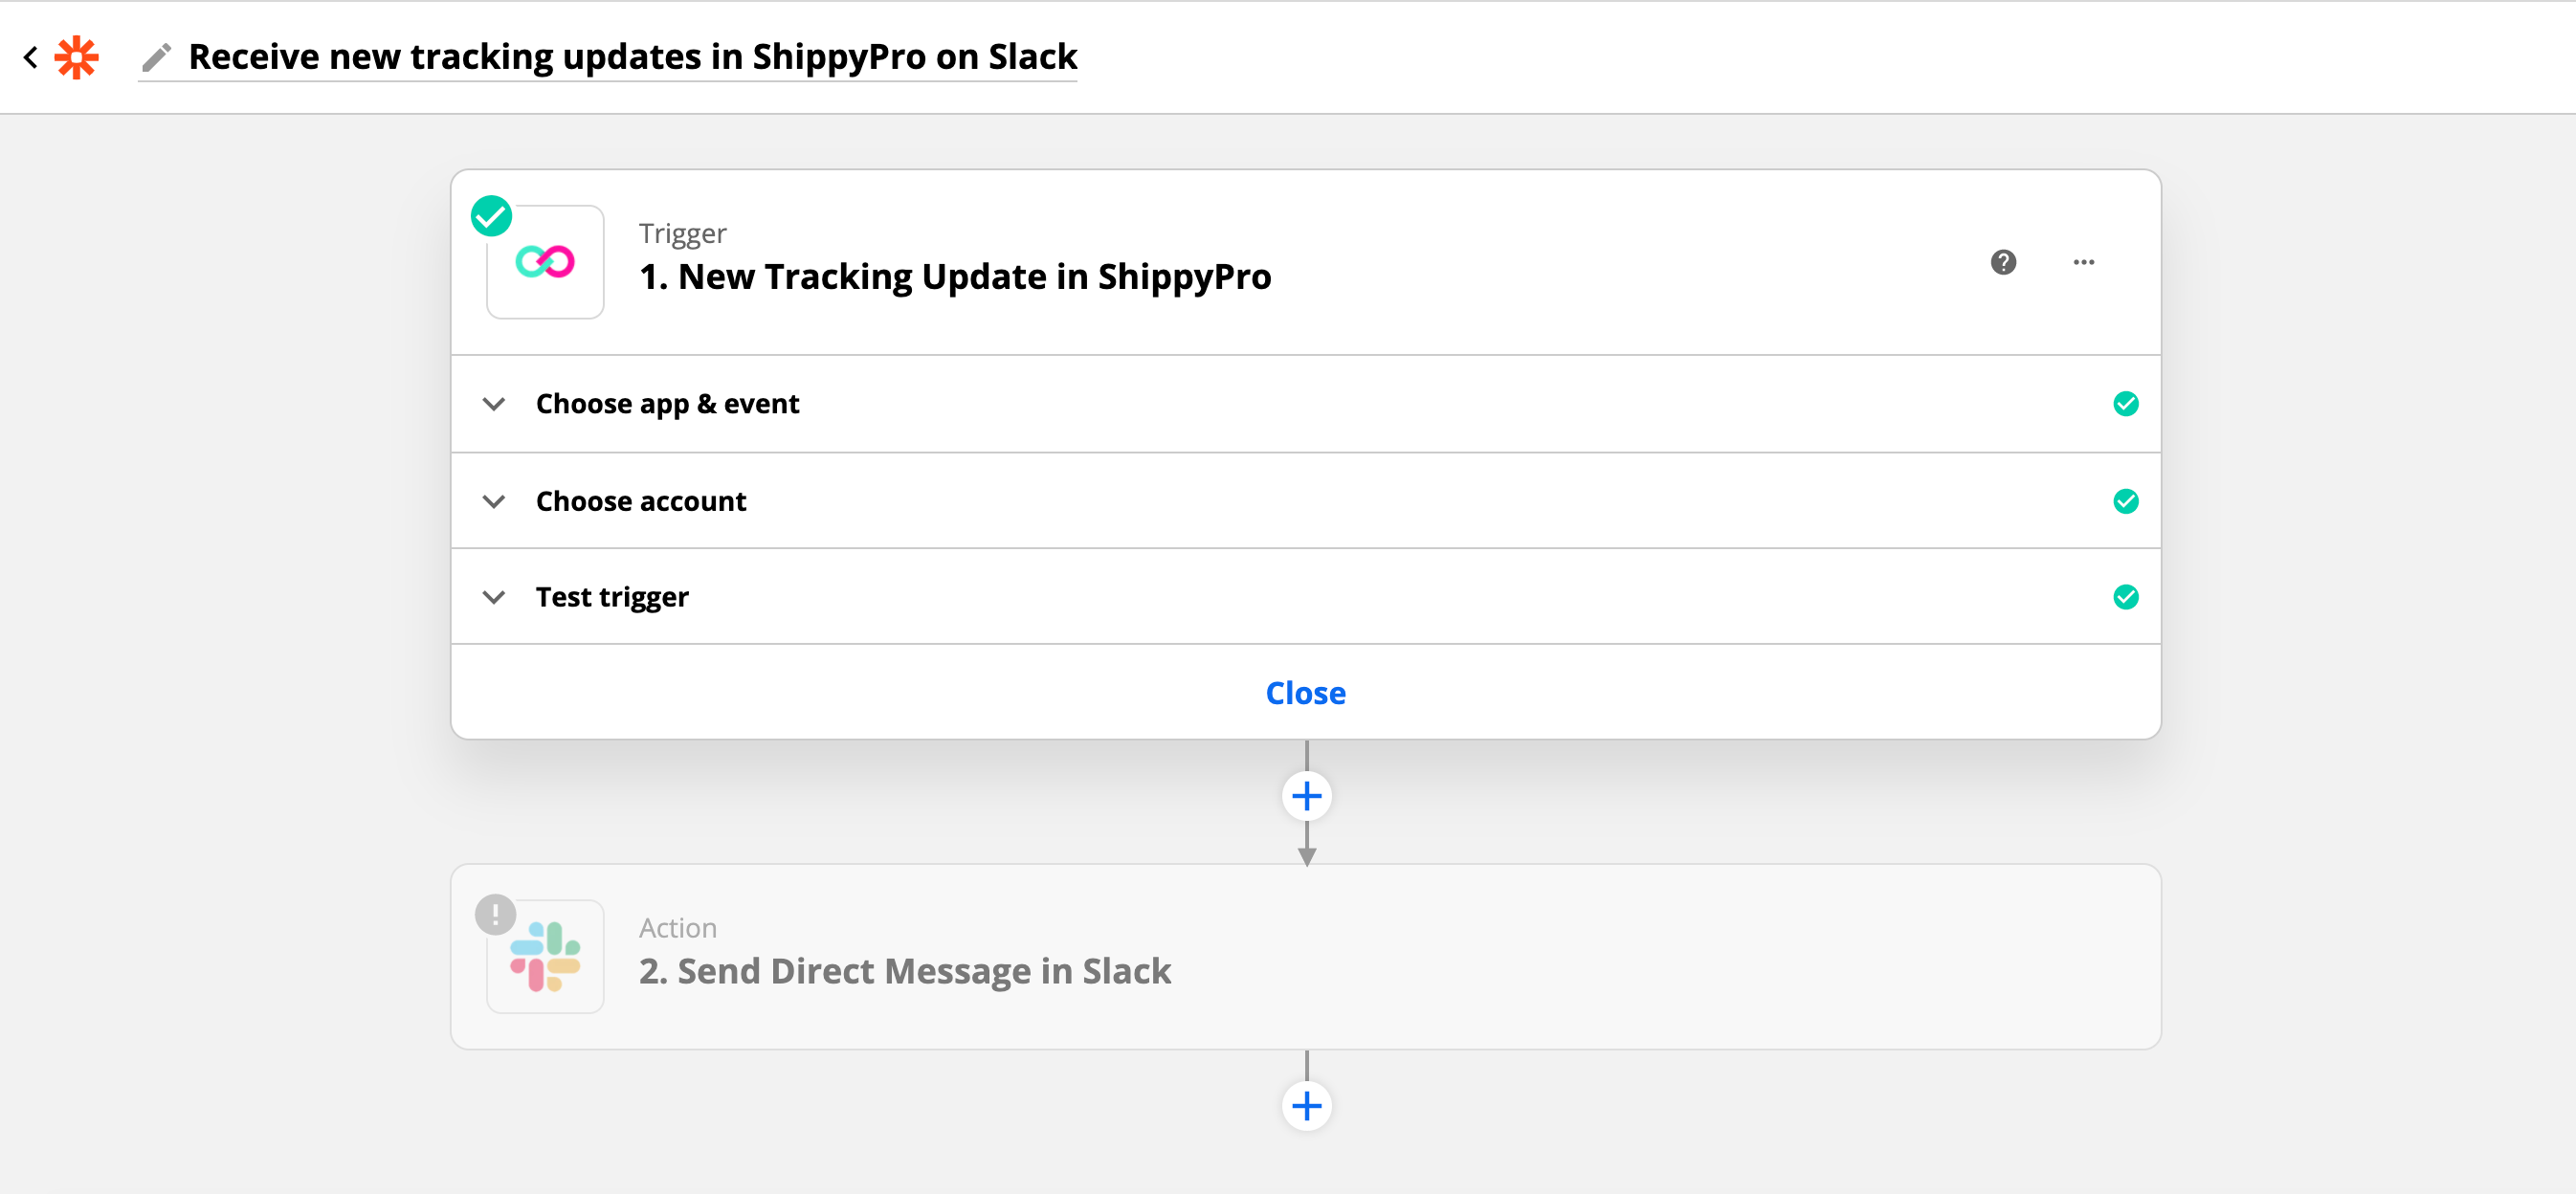 How to receive ShippyPro tracking updates in Slack